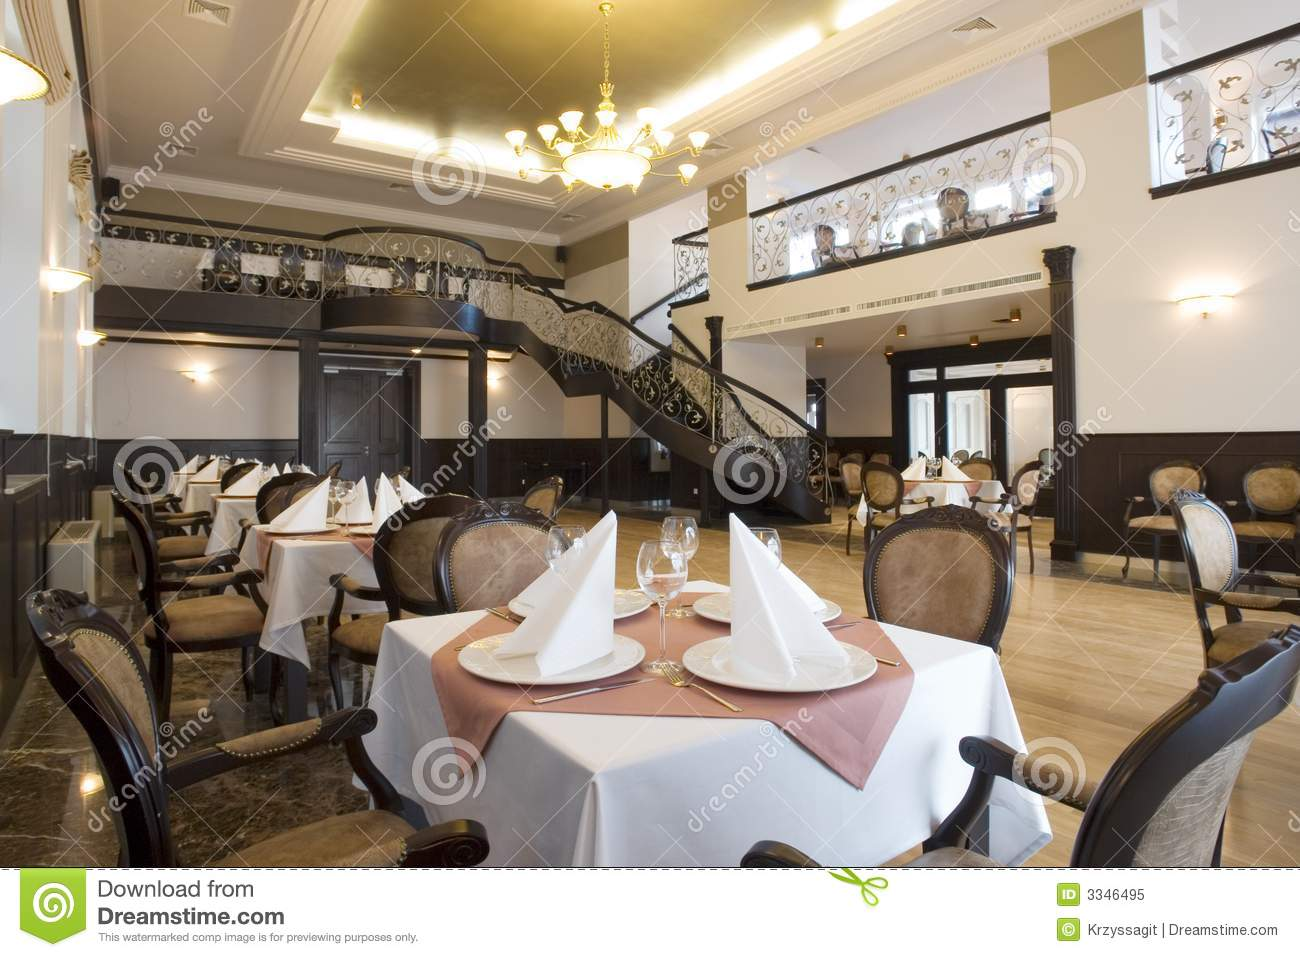 Grand interior dining hall royalty free stock photo for Dining hall interior